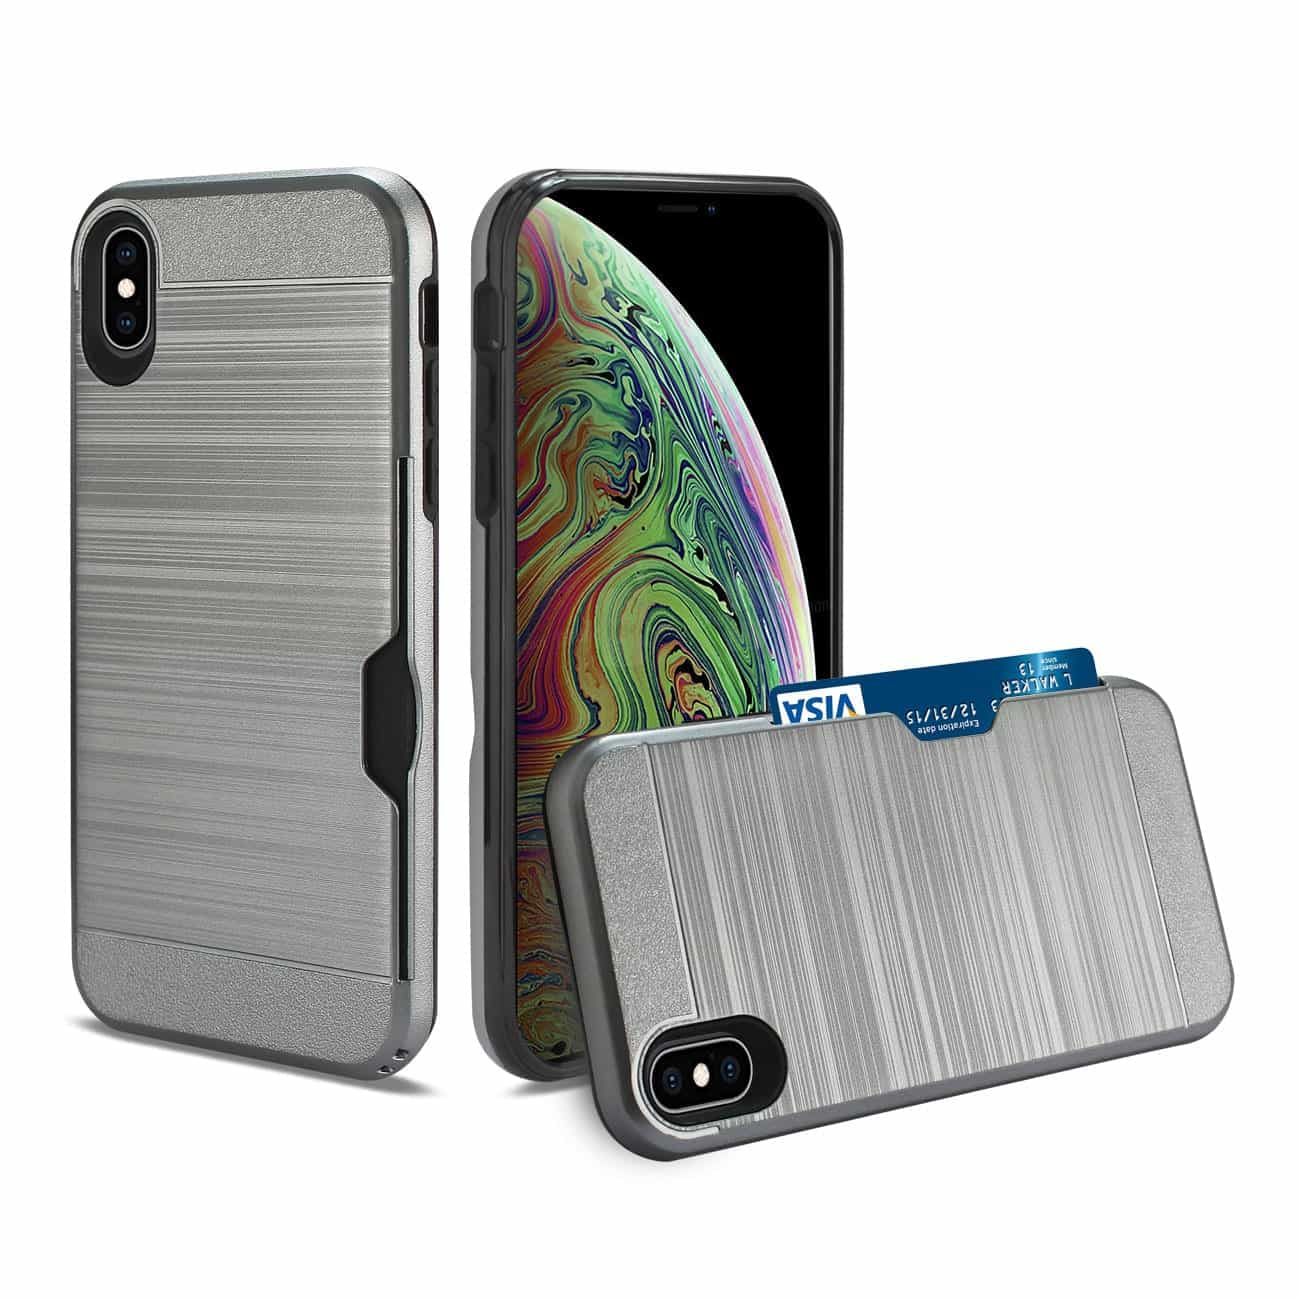 iPhone XS Max Slim Armor Hybrid Case With Card Holder In Gray